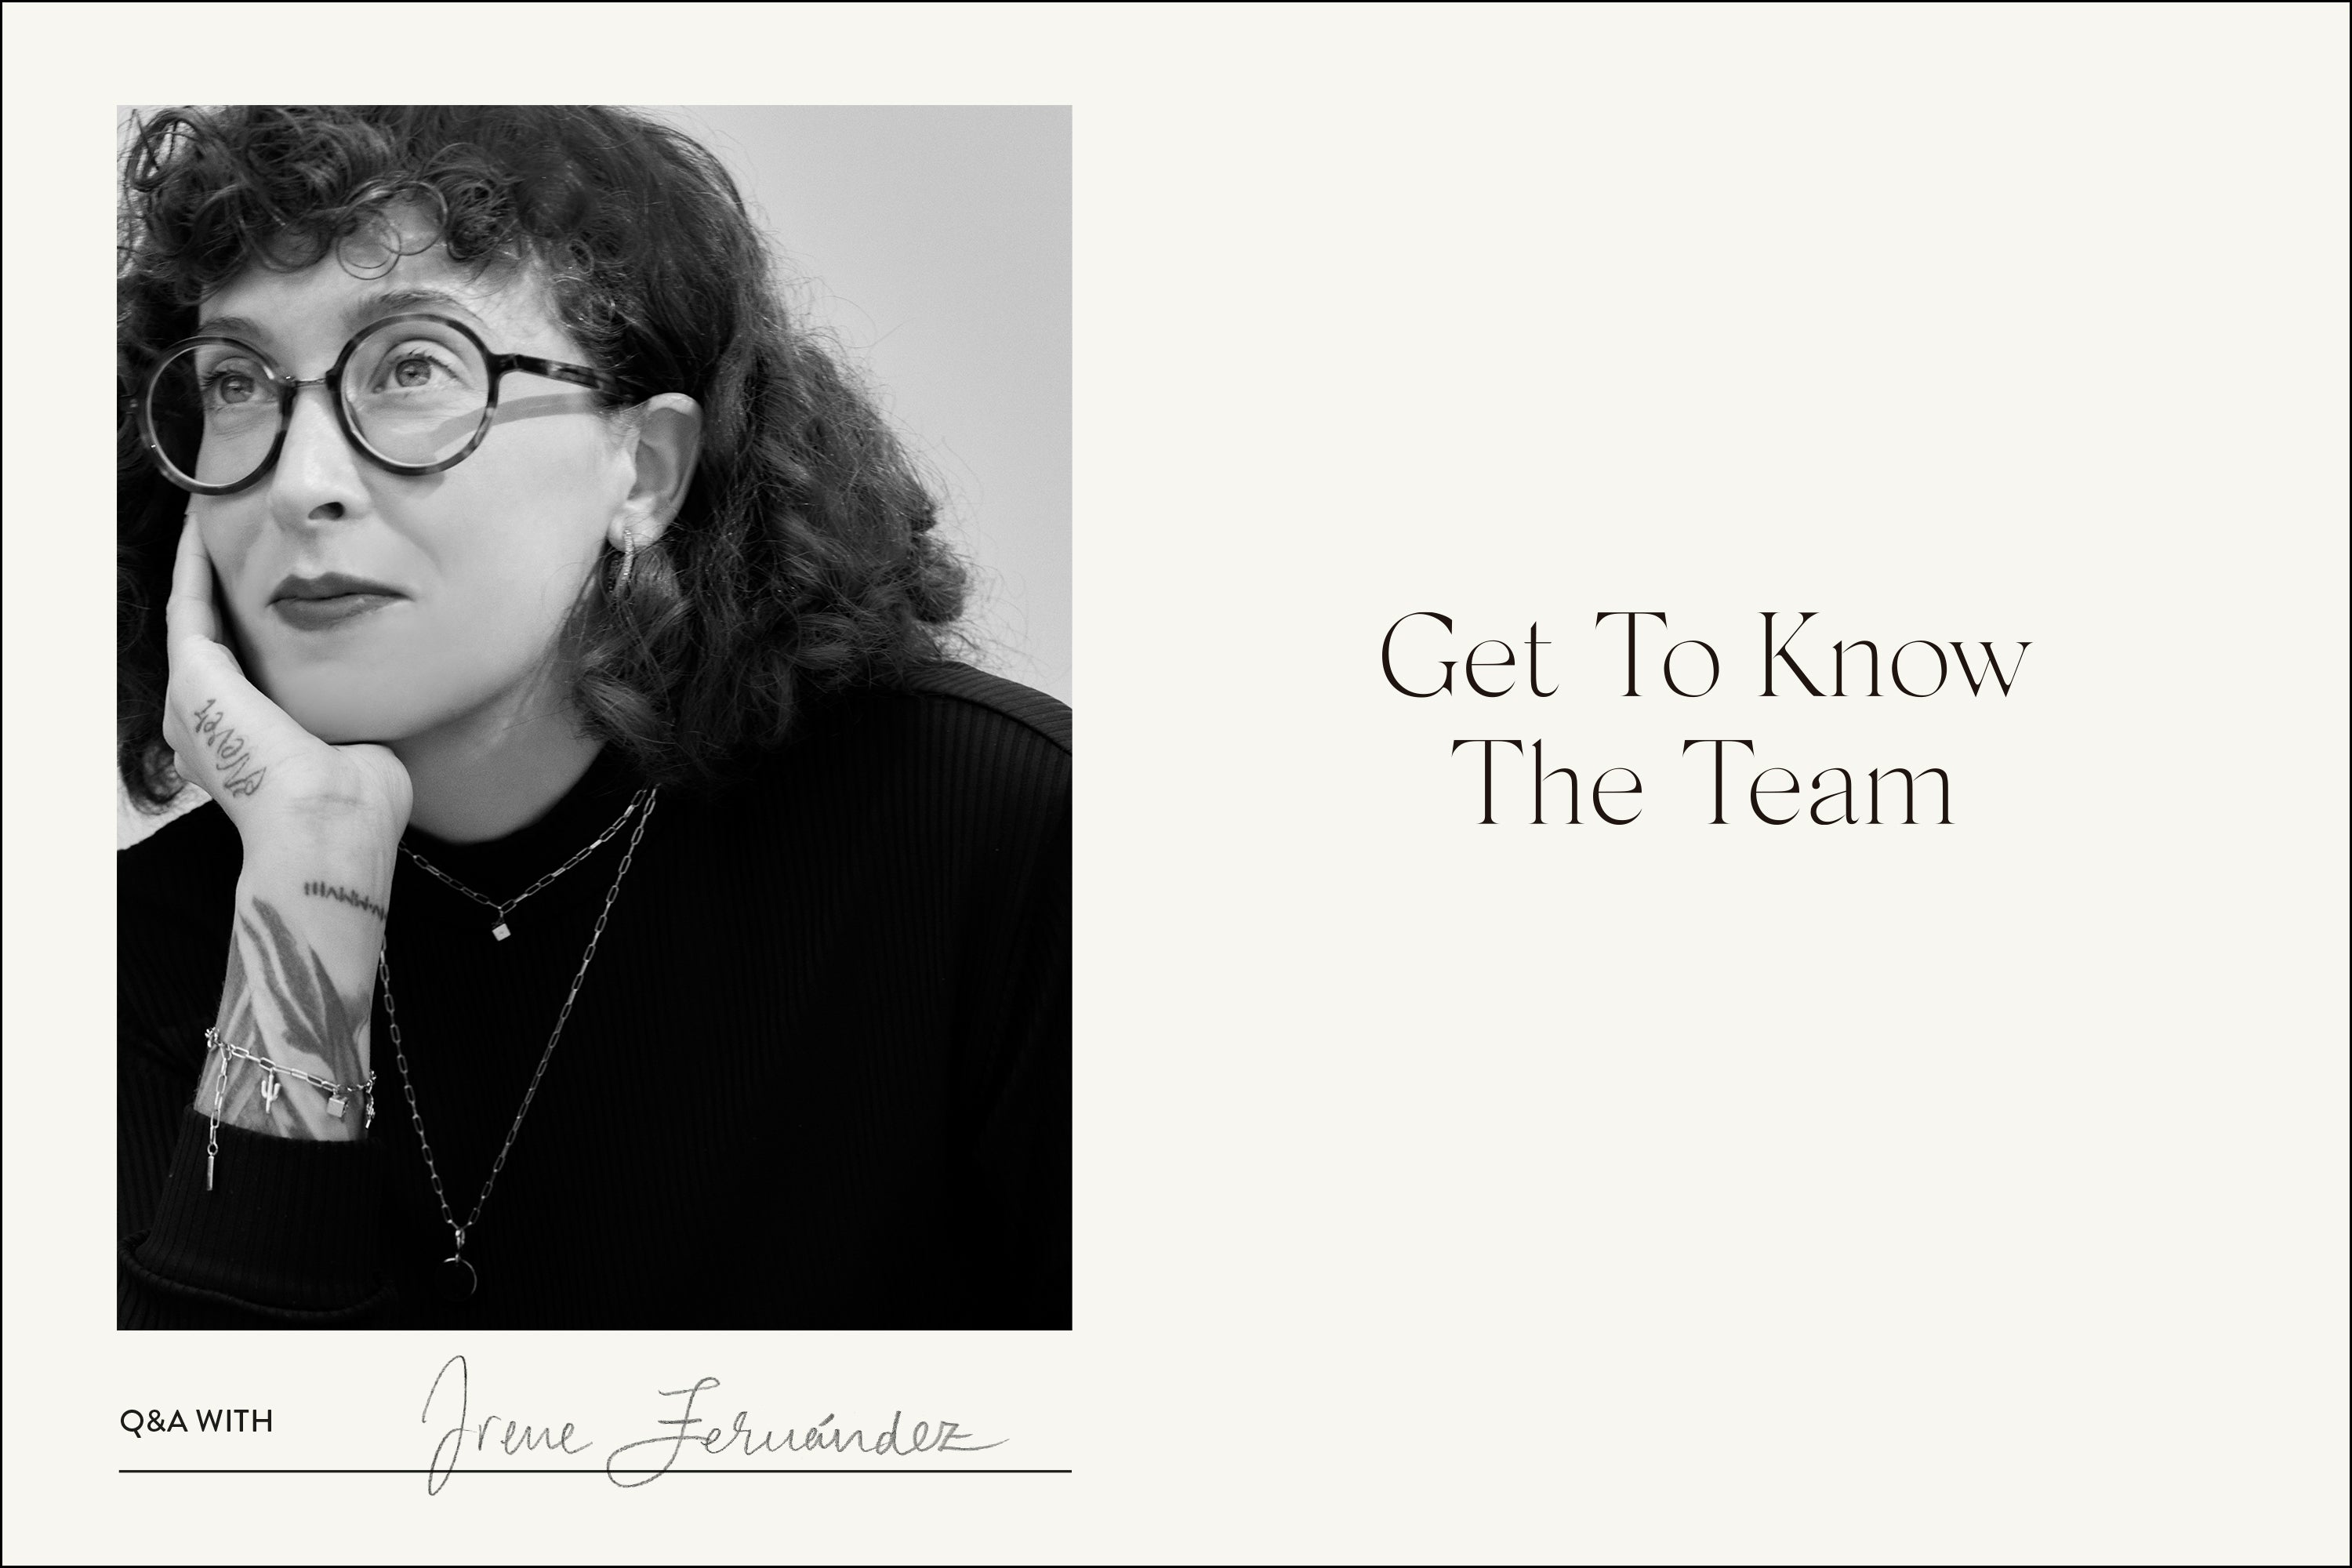 Get To Know the team! Q&A with: Irene Fernández